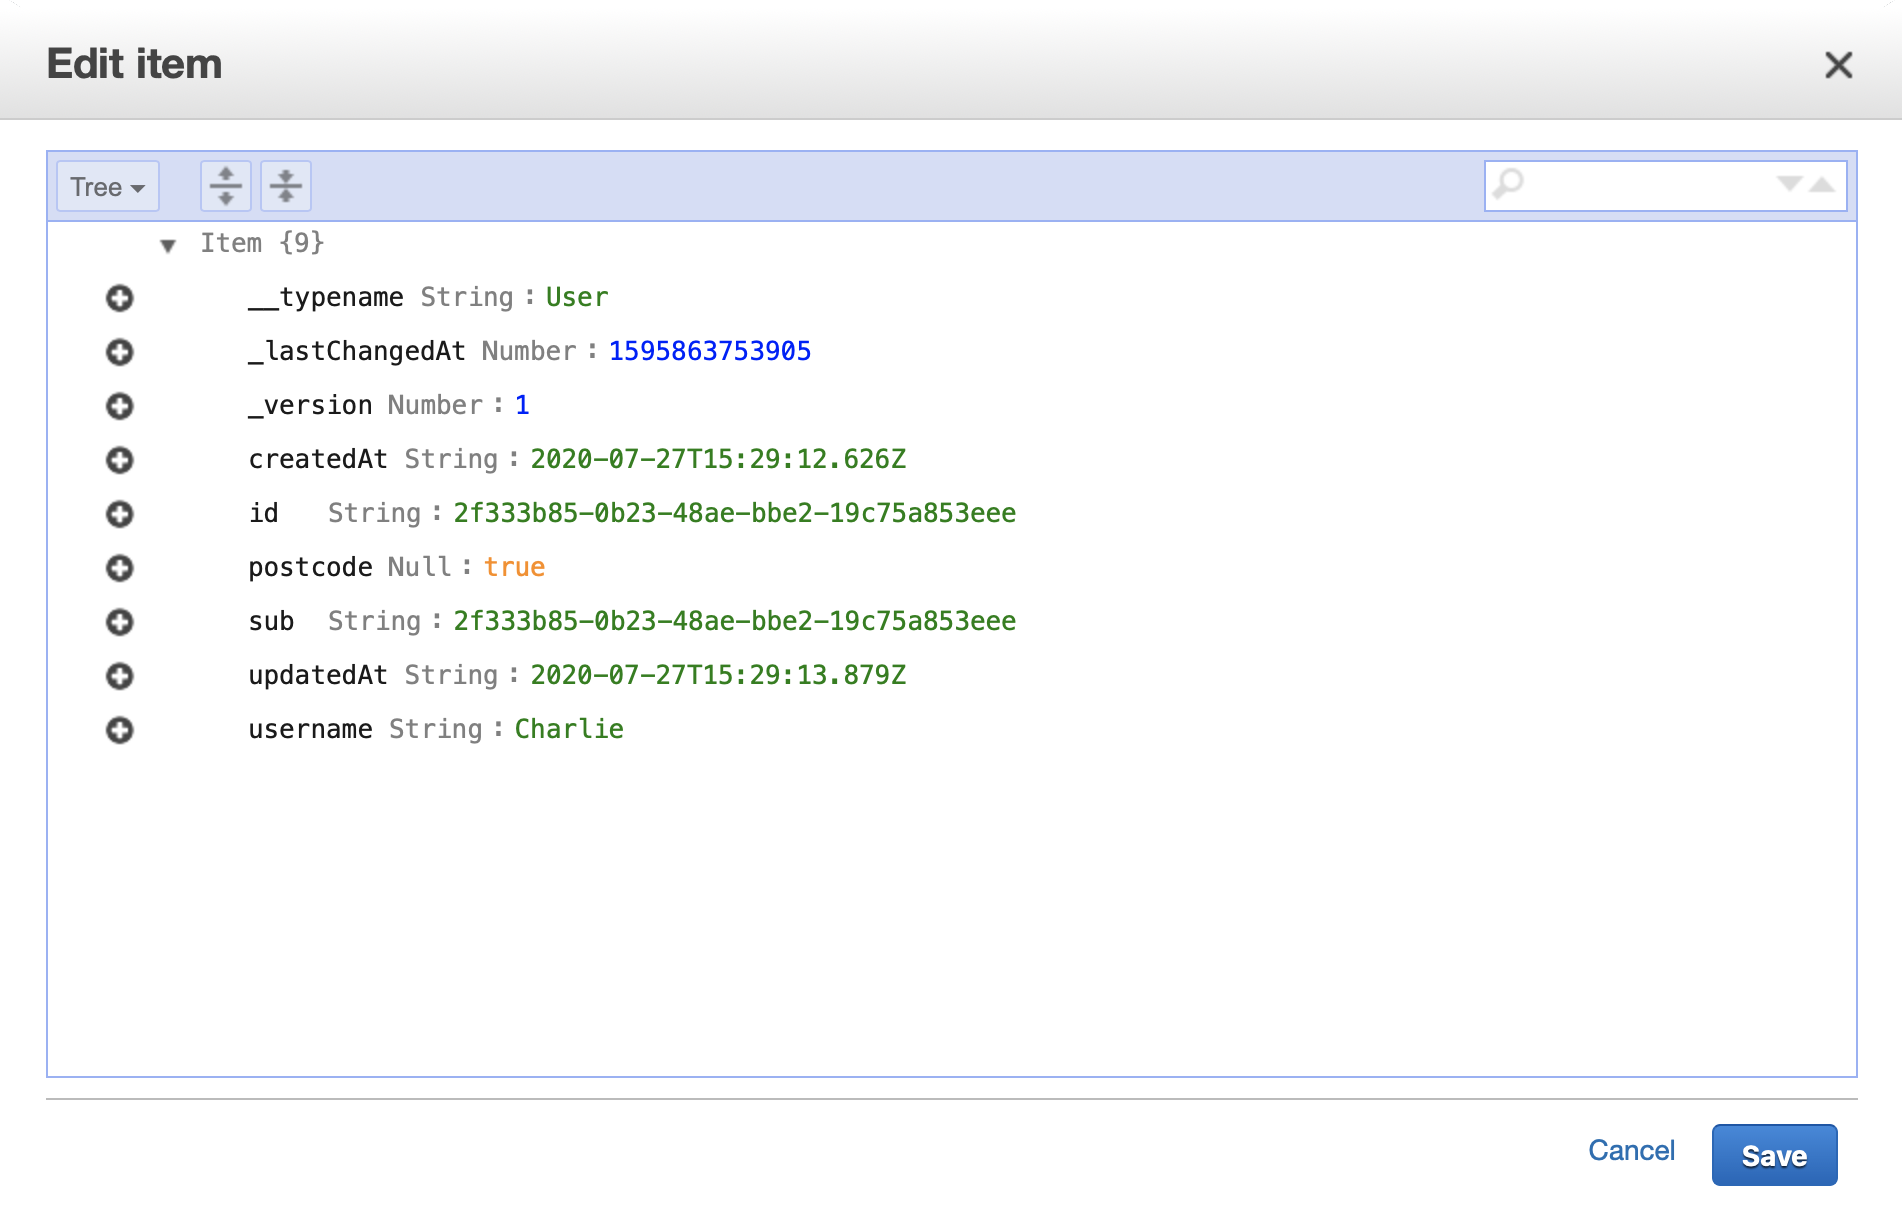 Viewing the User record for the second user